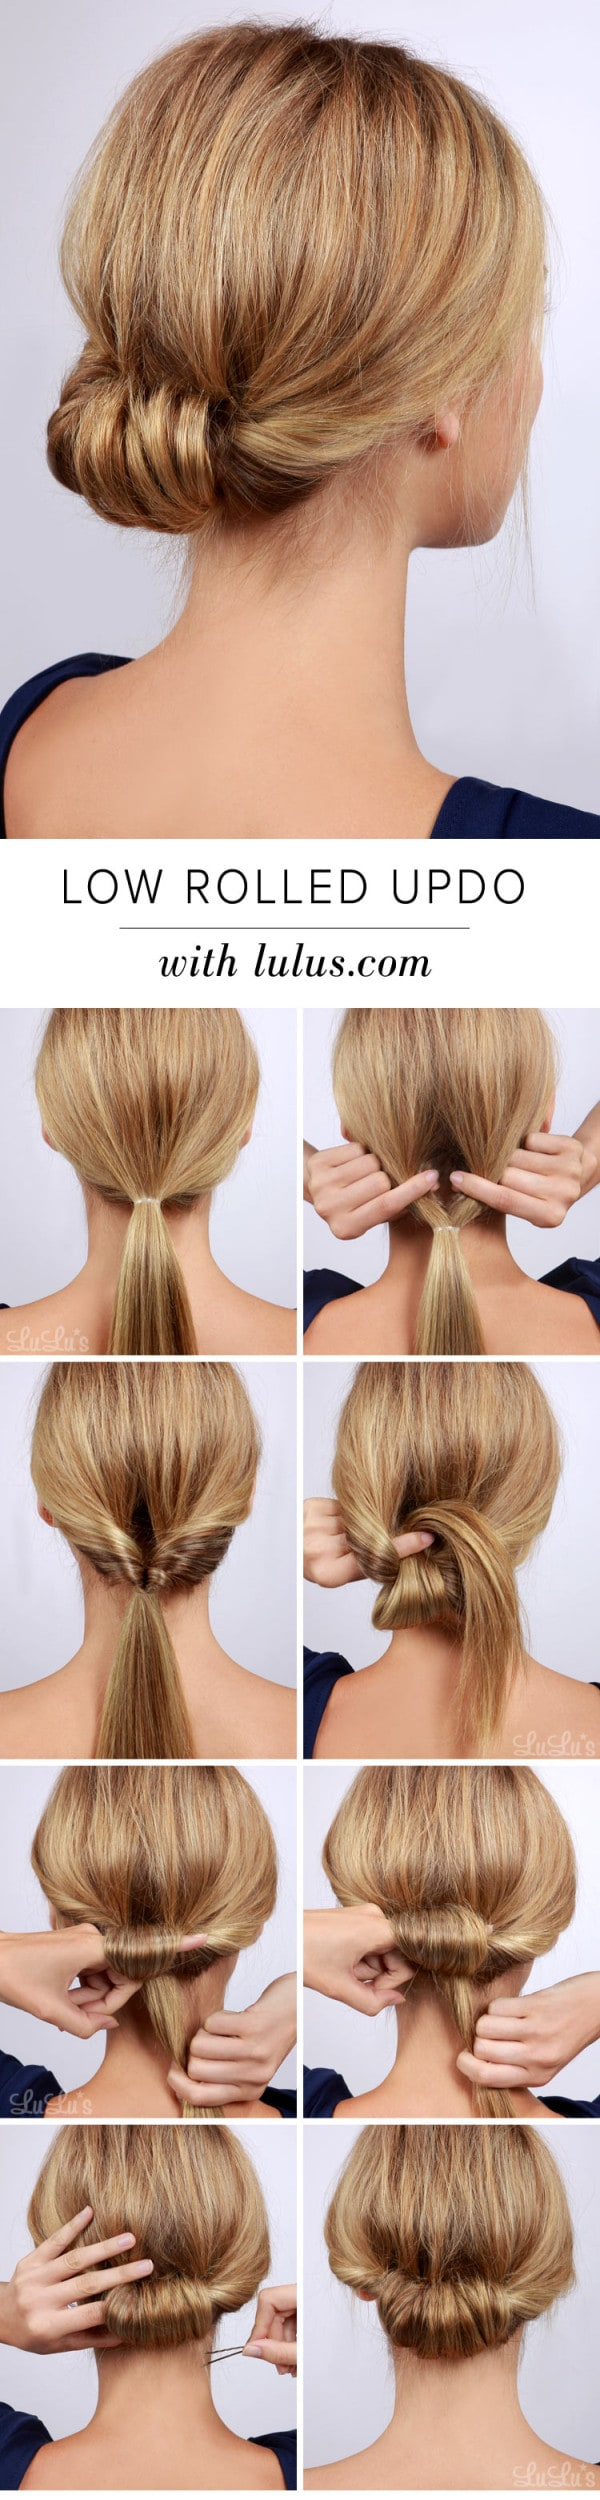 10 Absolutely Amazing Hairstyle Tips And Ideas Ready For Only A Minute